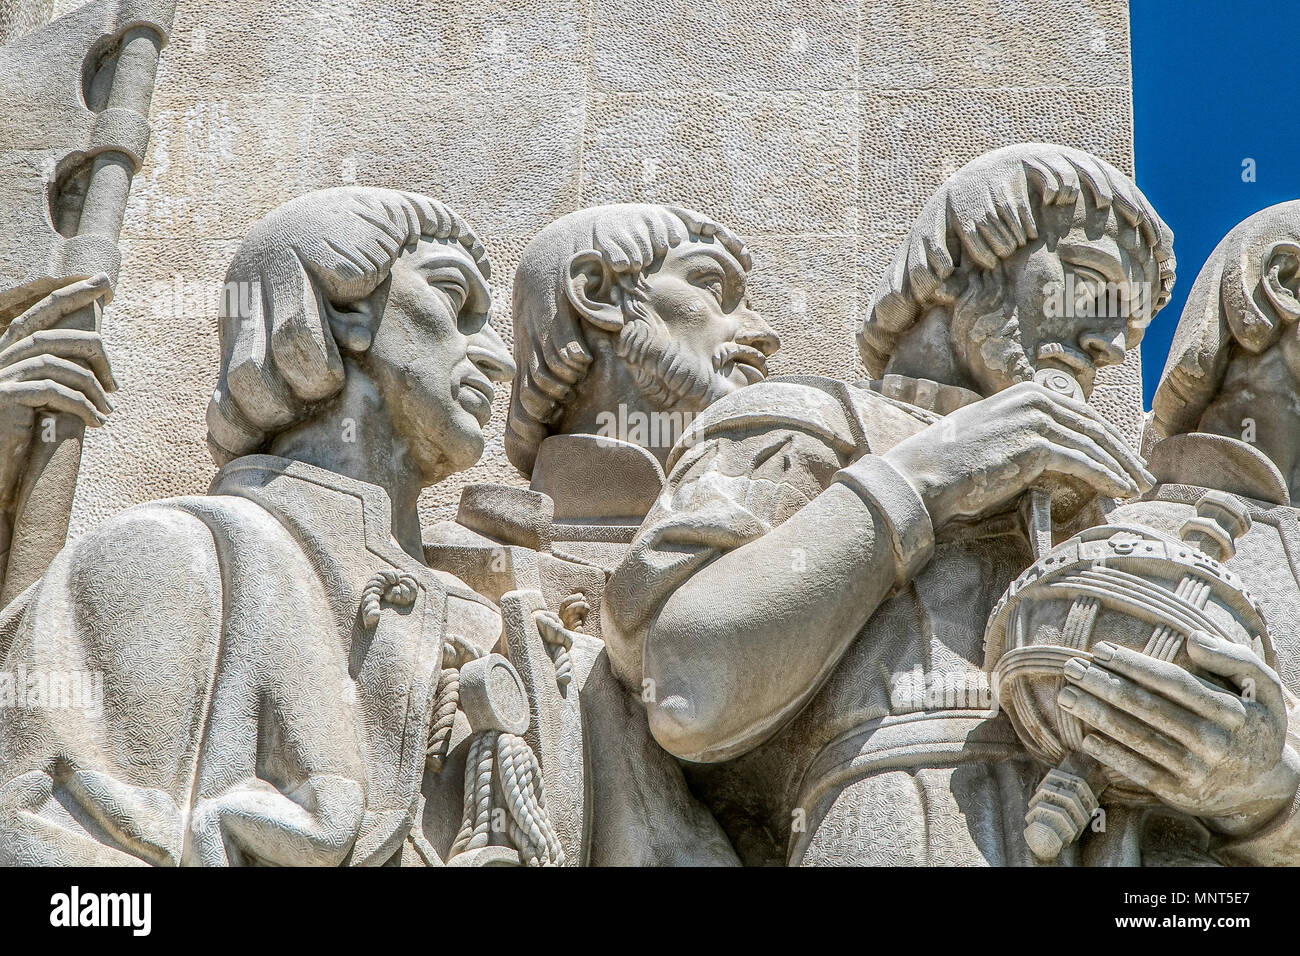 Lisbon, Portugal, May 5, 2018: Statues of Jacome of Majorca, Pero Escobar and Pedro Nunes, detail of the Monument to the Discoveries. - Stock Image